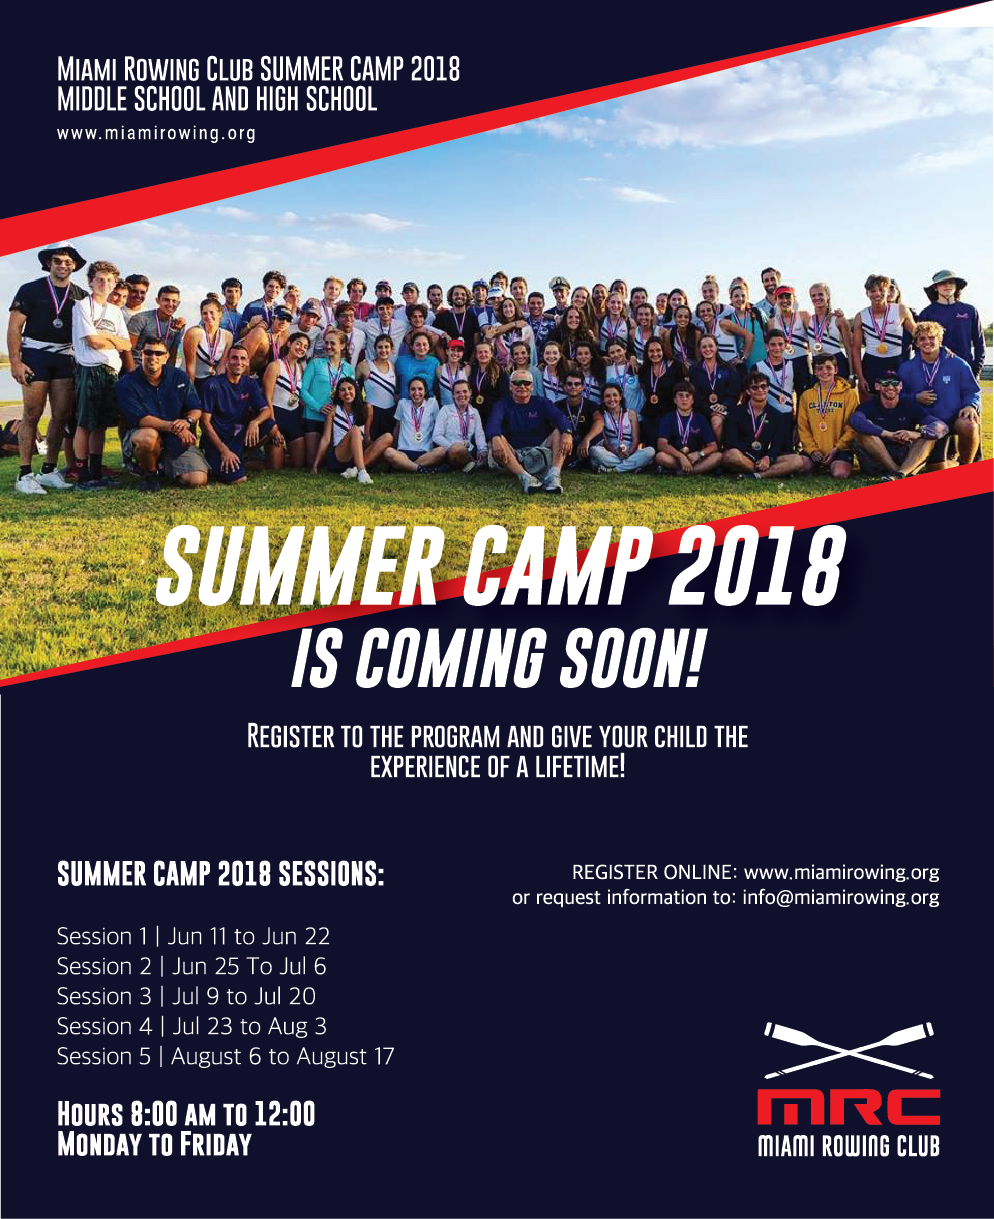 Summer Camps 2017 The Miami Rowing Club